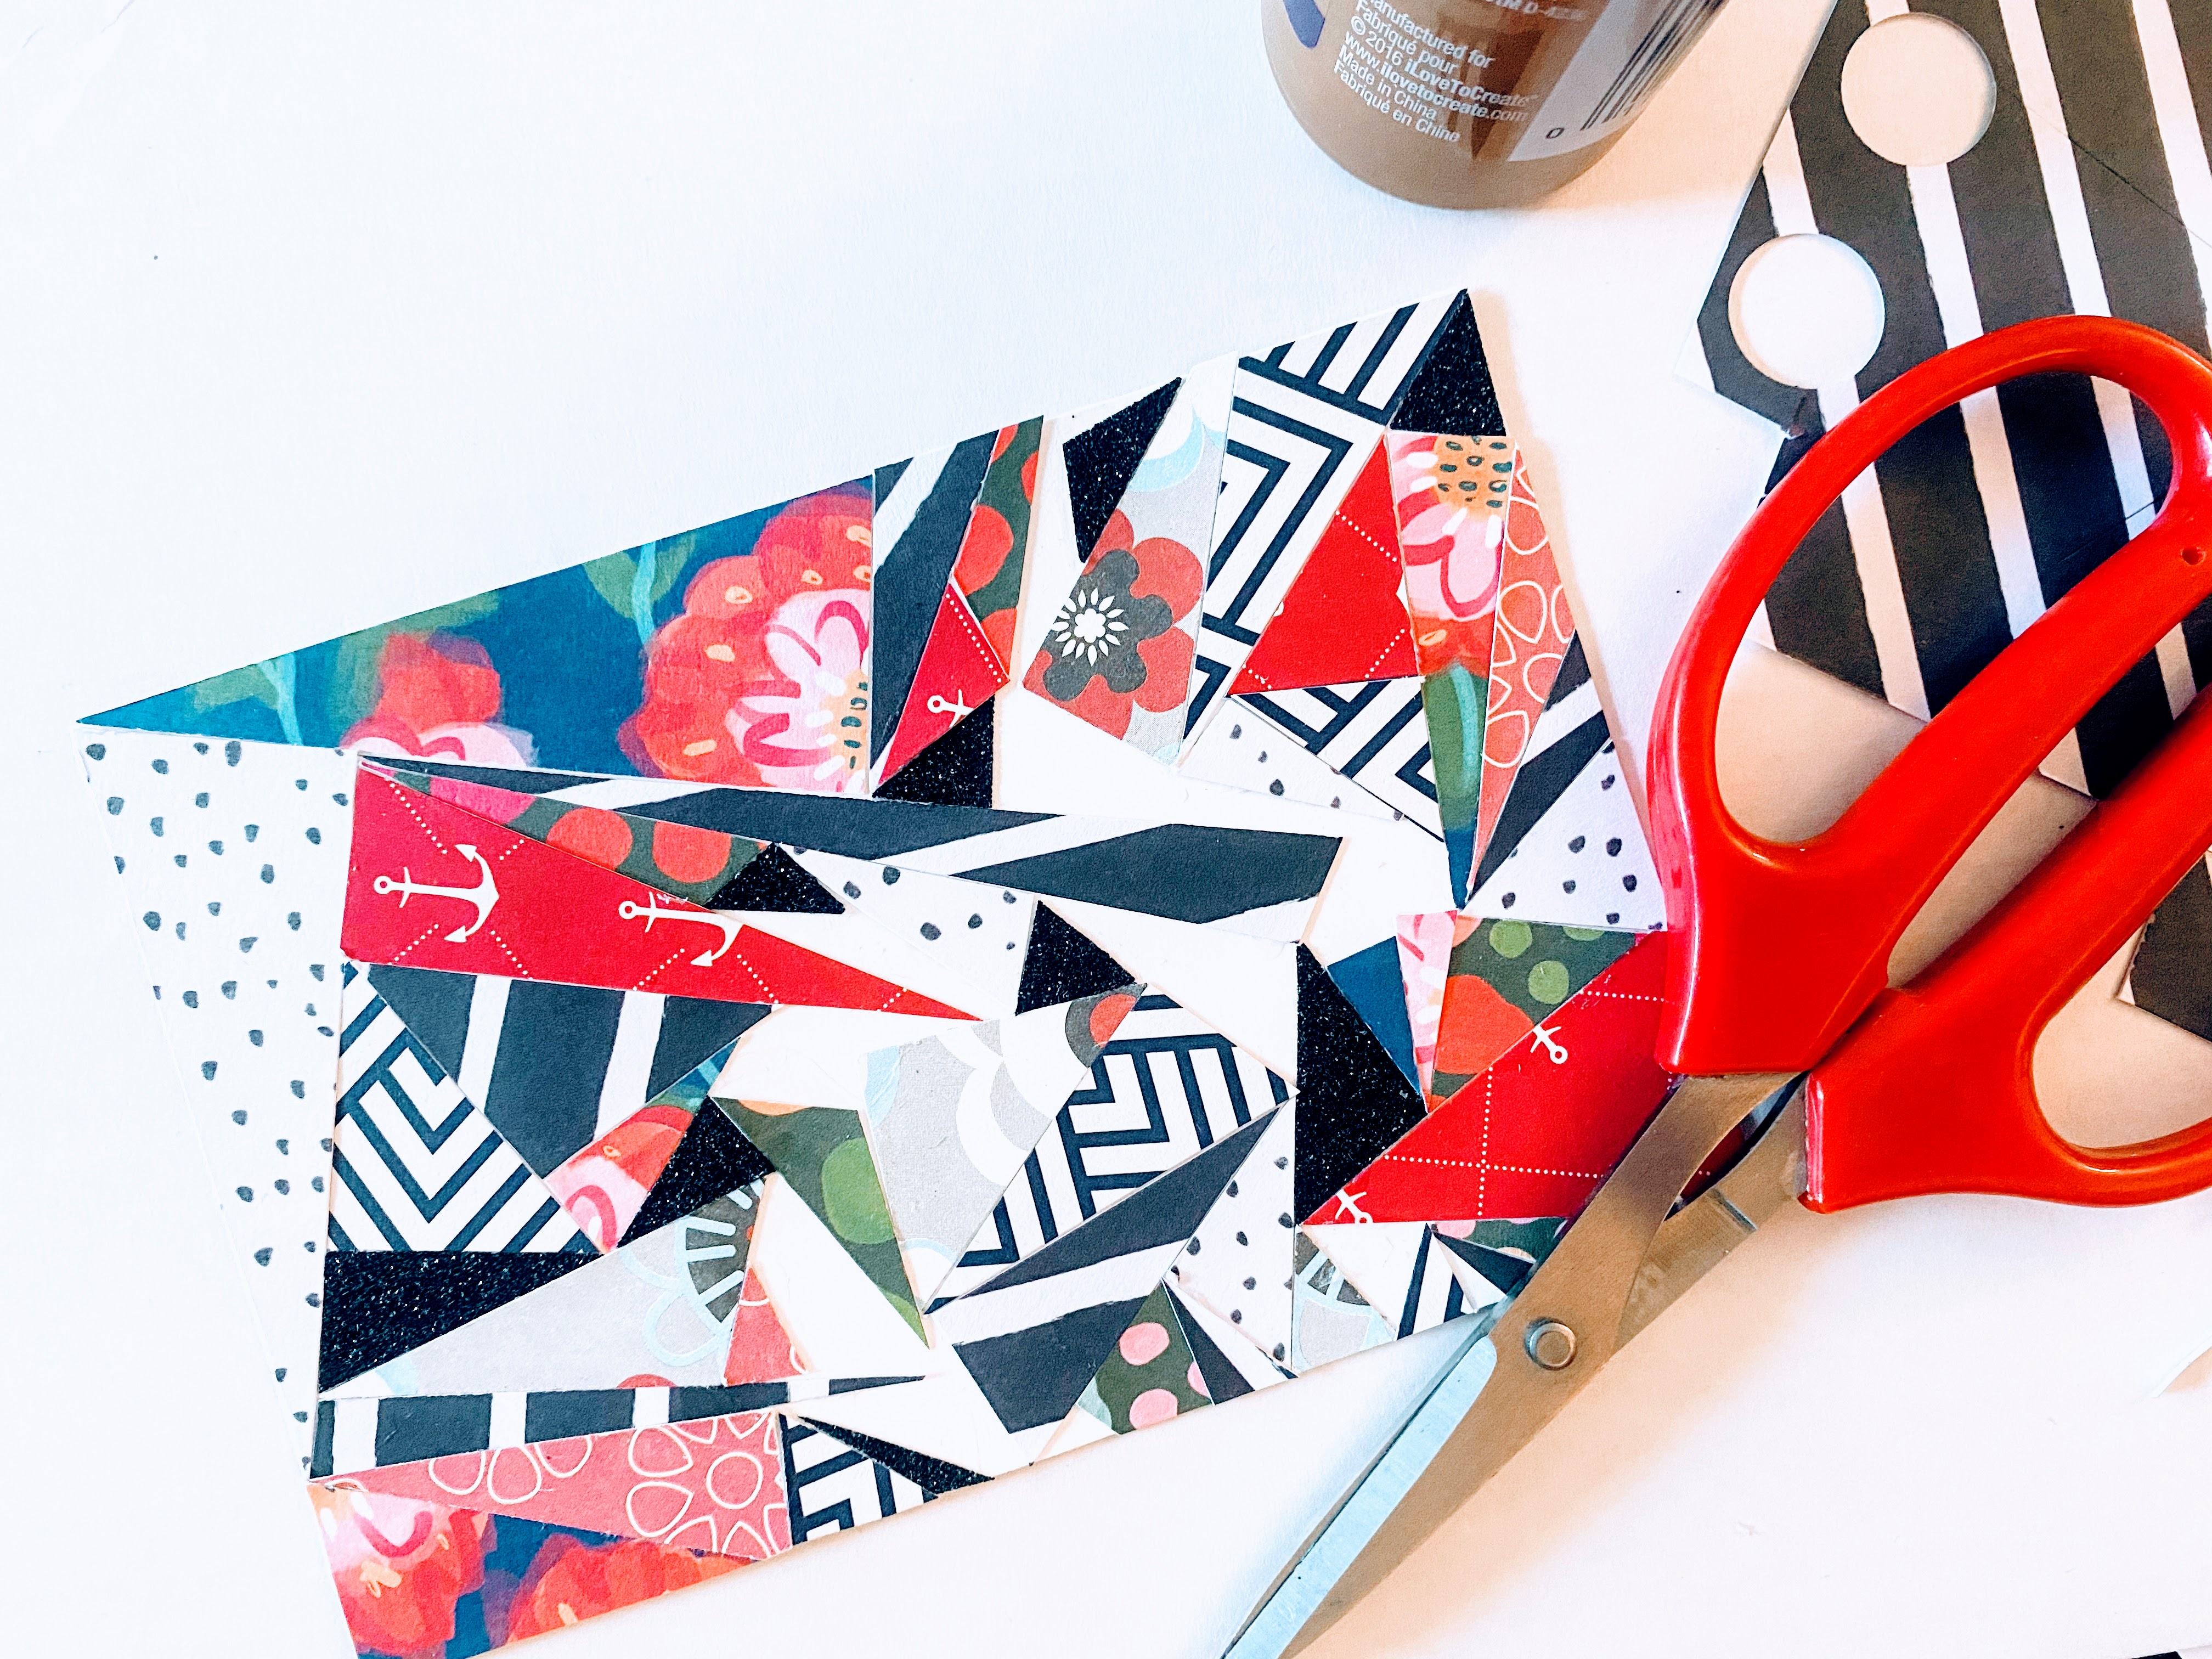 Here we tried to fill in the gaps by cutting smaller triangles to fit in between larger triangles of our abstract art card.